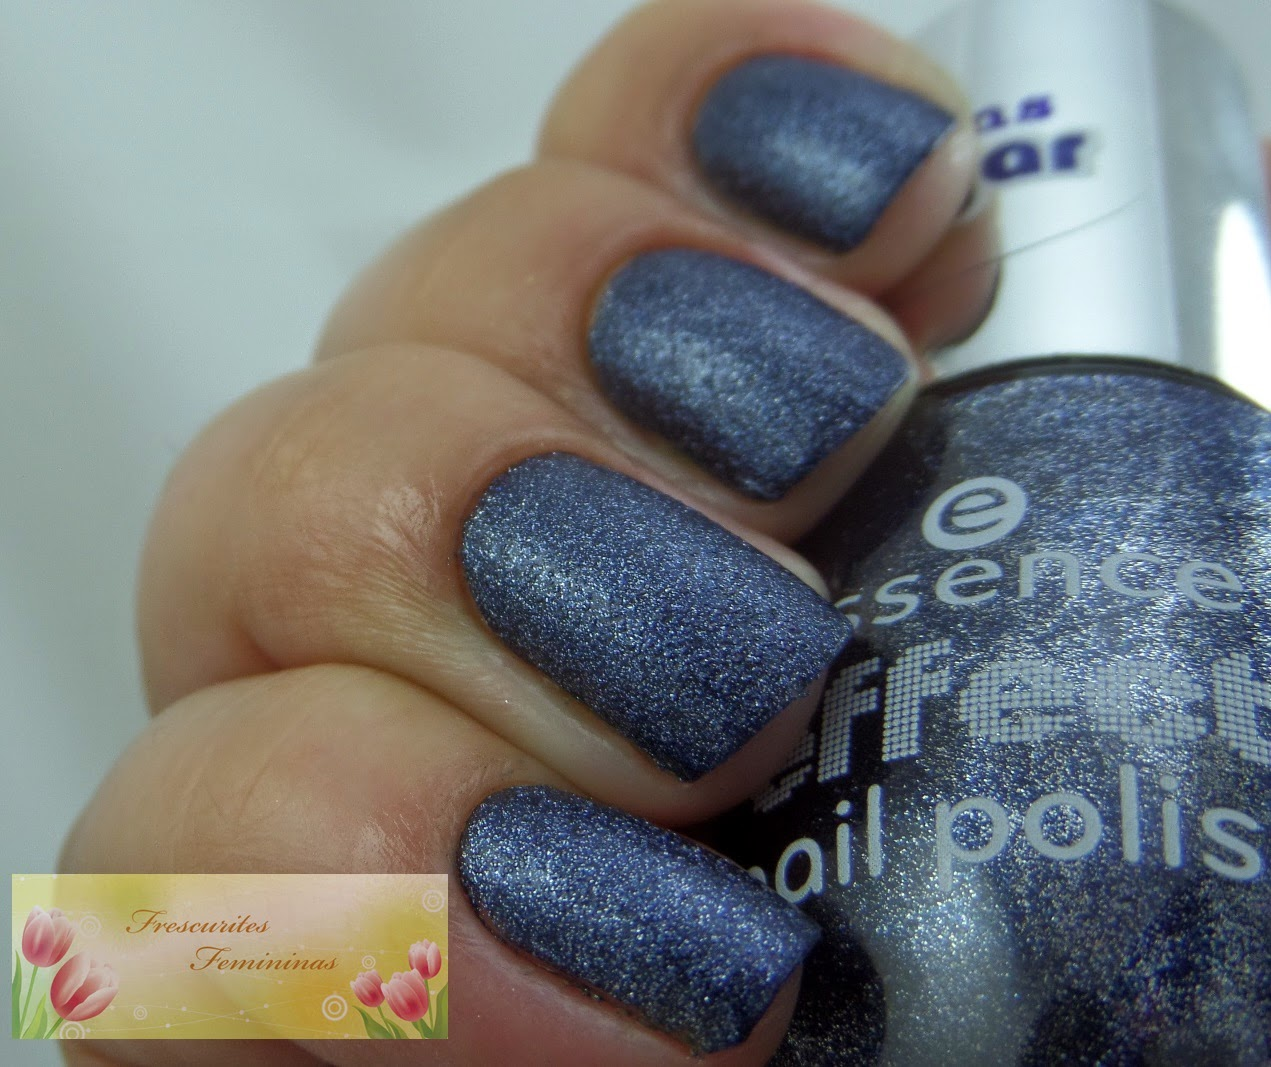 Blue nails, essence, frescurites femininas